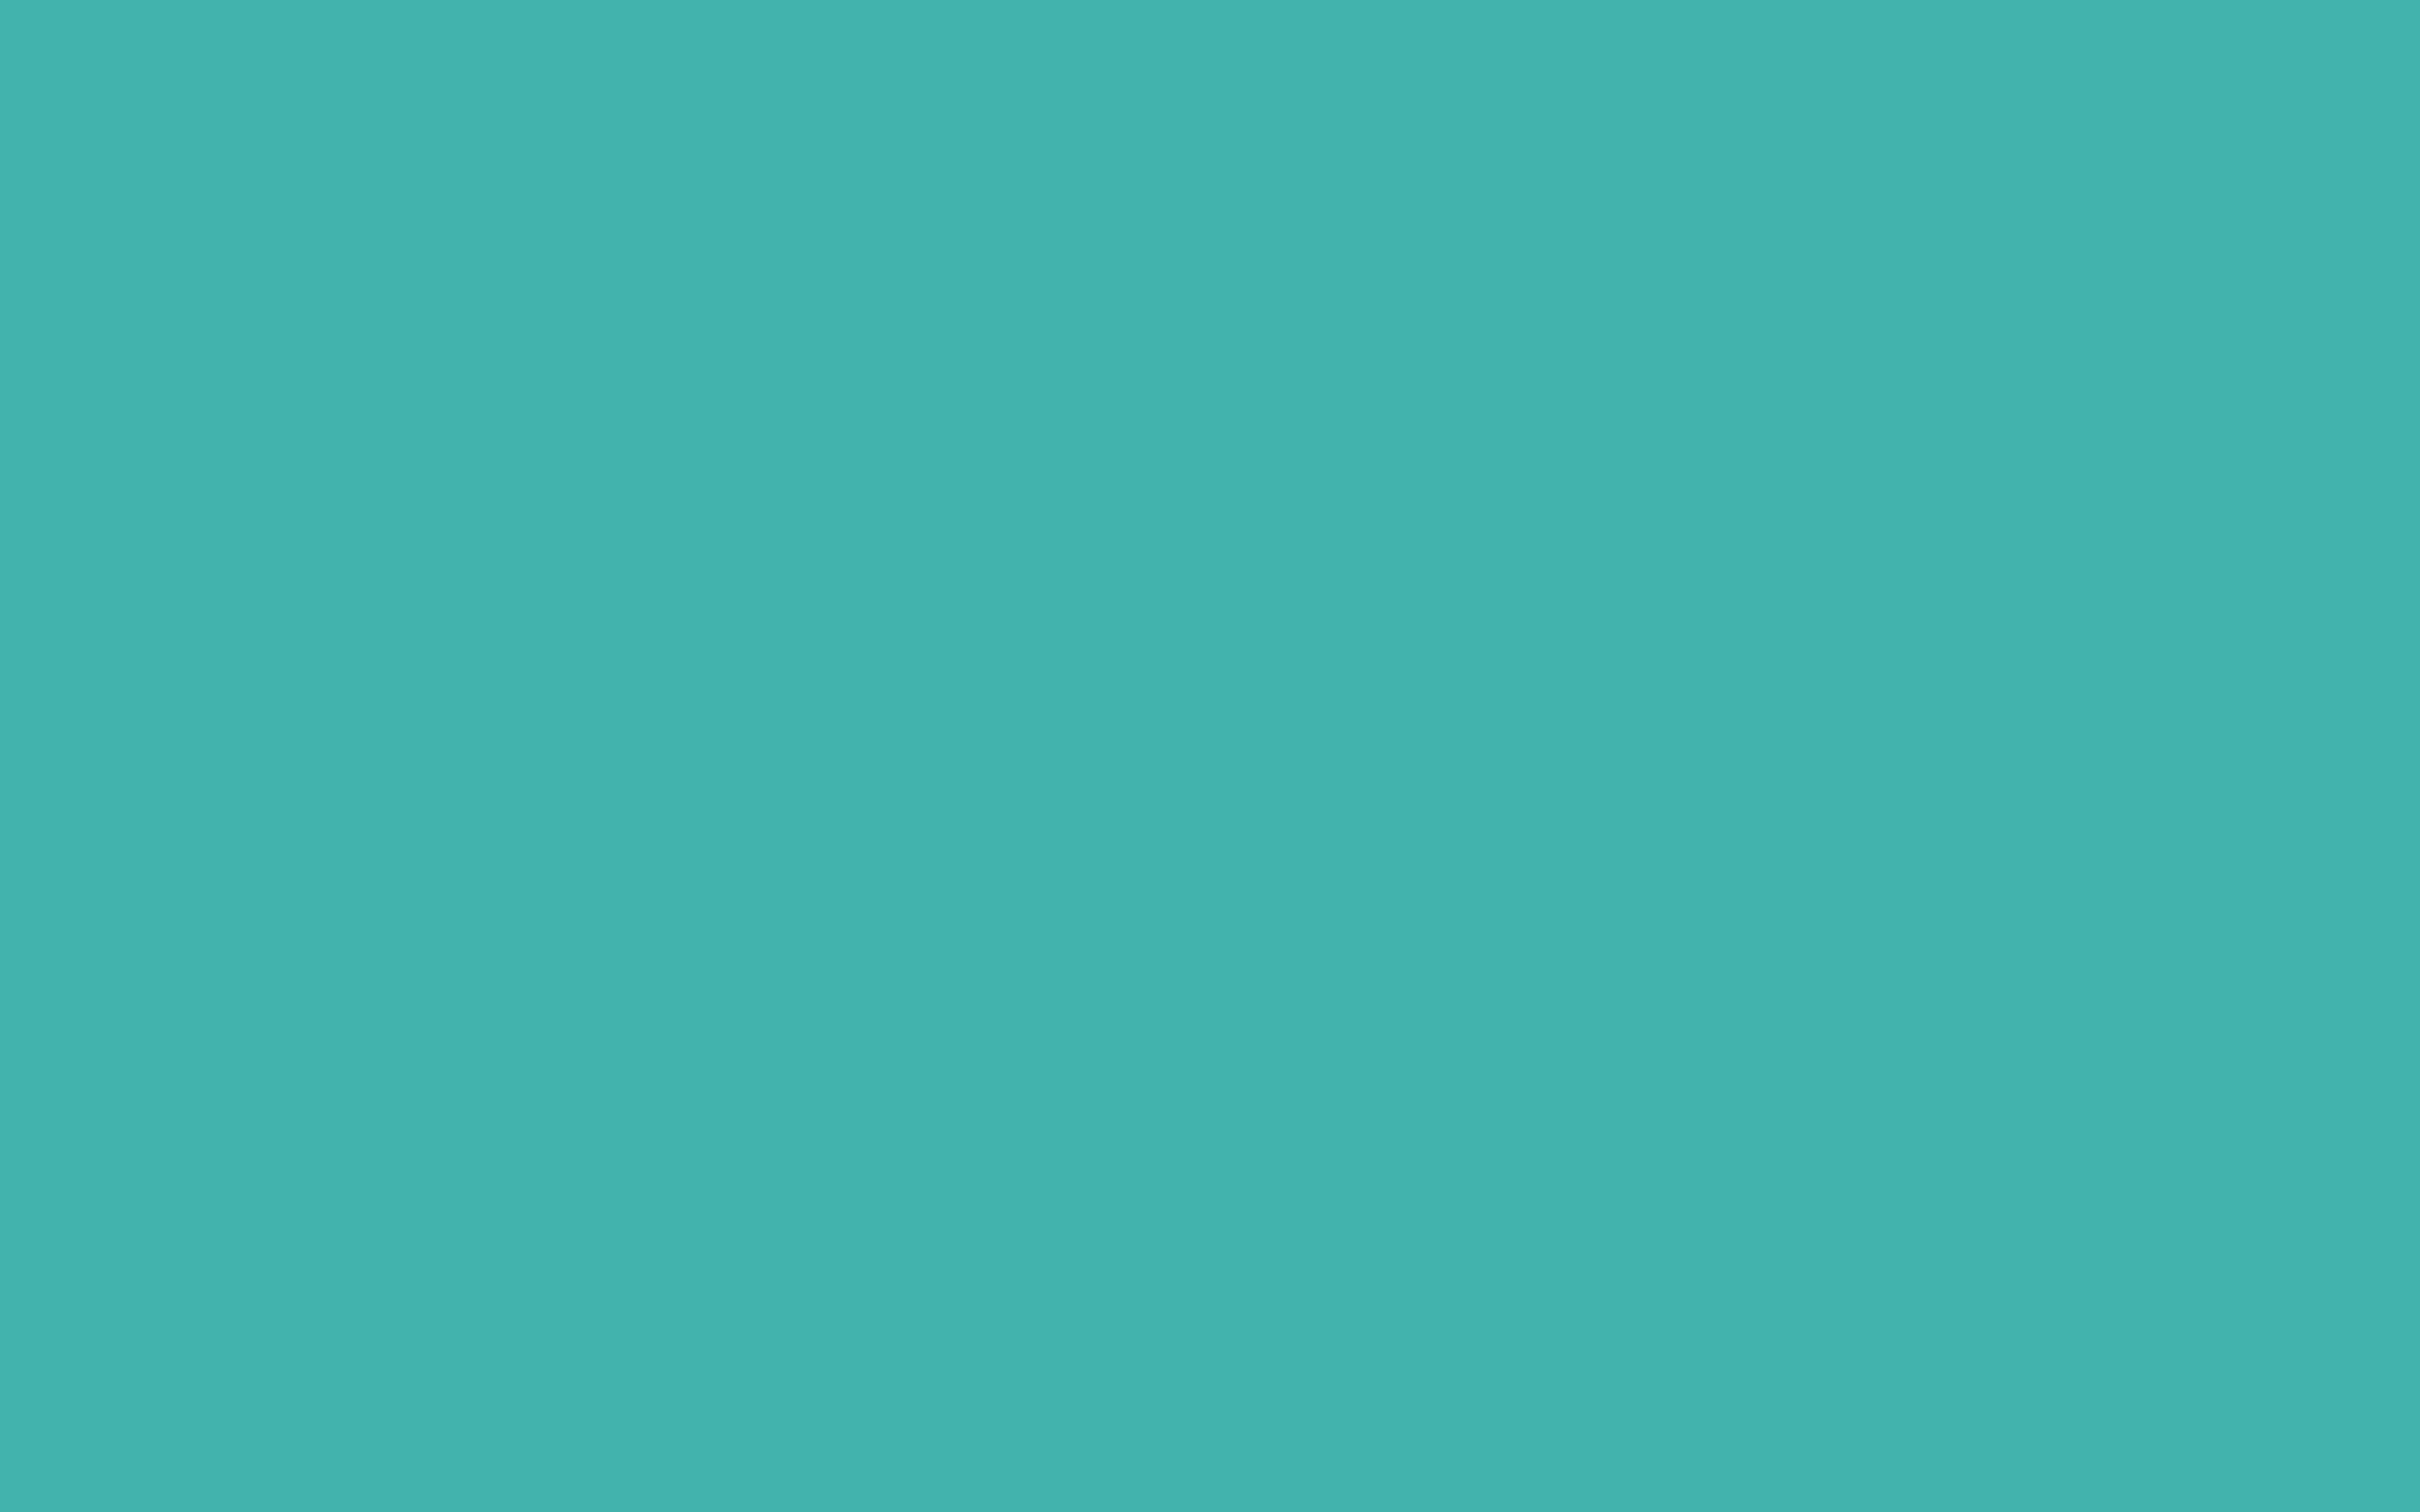 2560x1600 Verdigris Solid Color Background